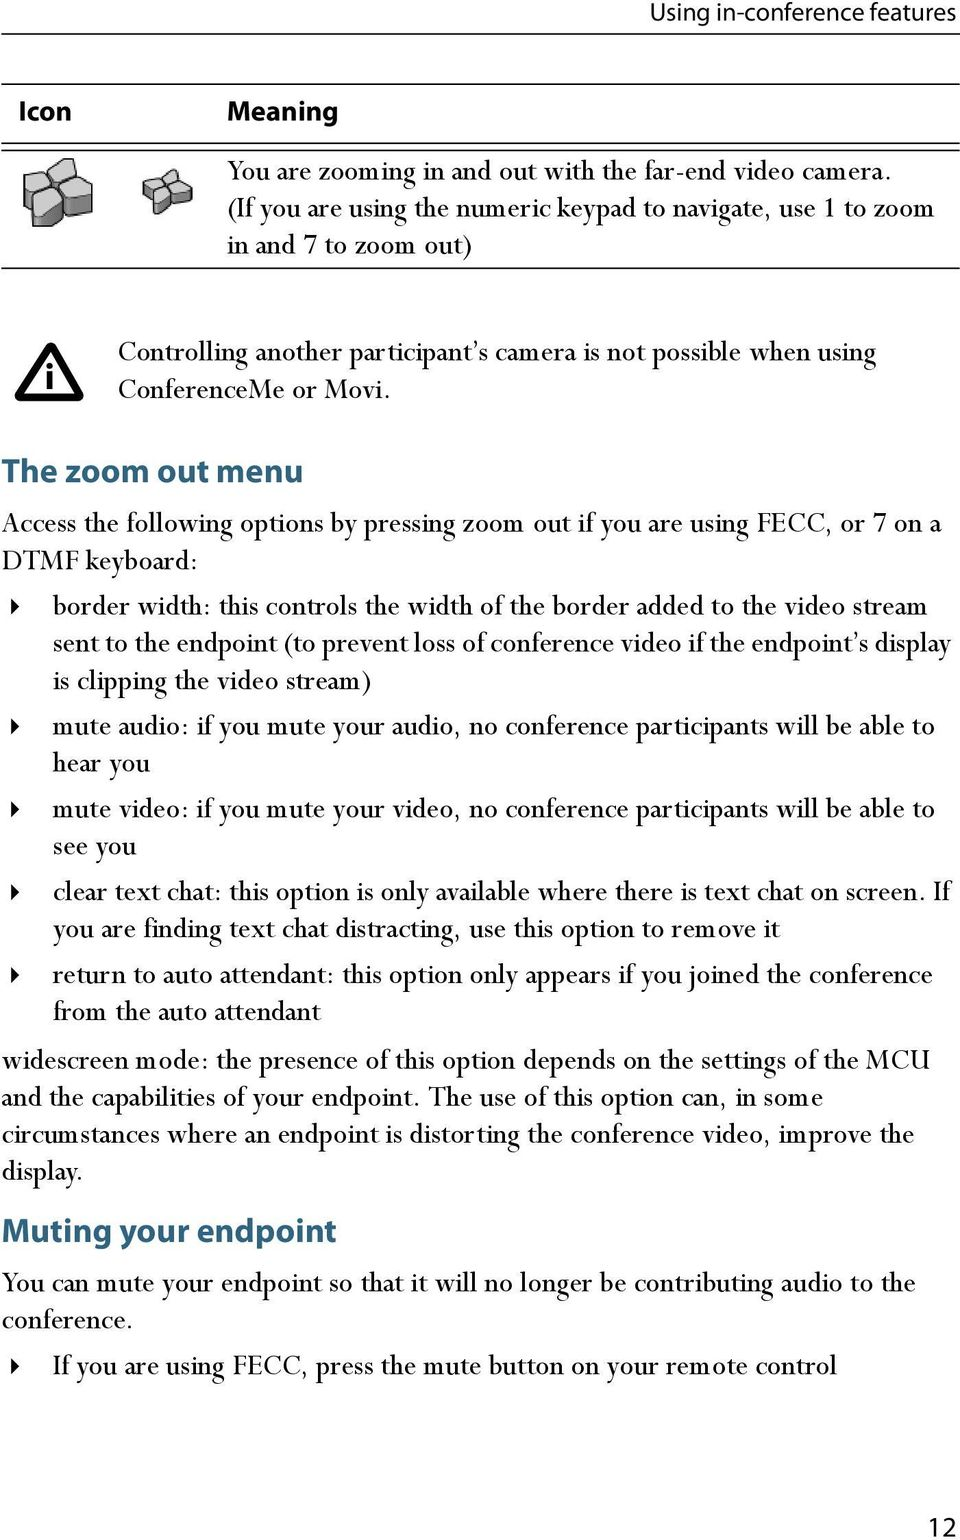 The zoom out menu Access the following options by pressing zoom out if you are using FECC, or 7 on a DTMF keyboard: border width: this controls the width of the border added to the video stream sent